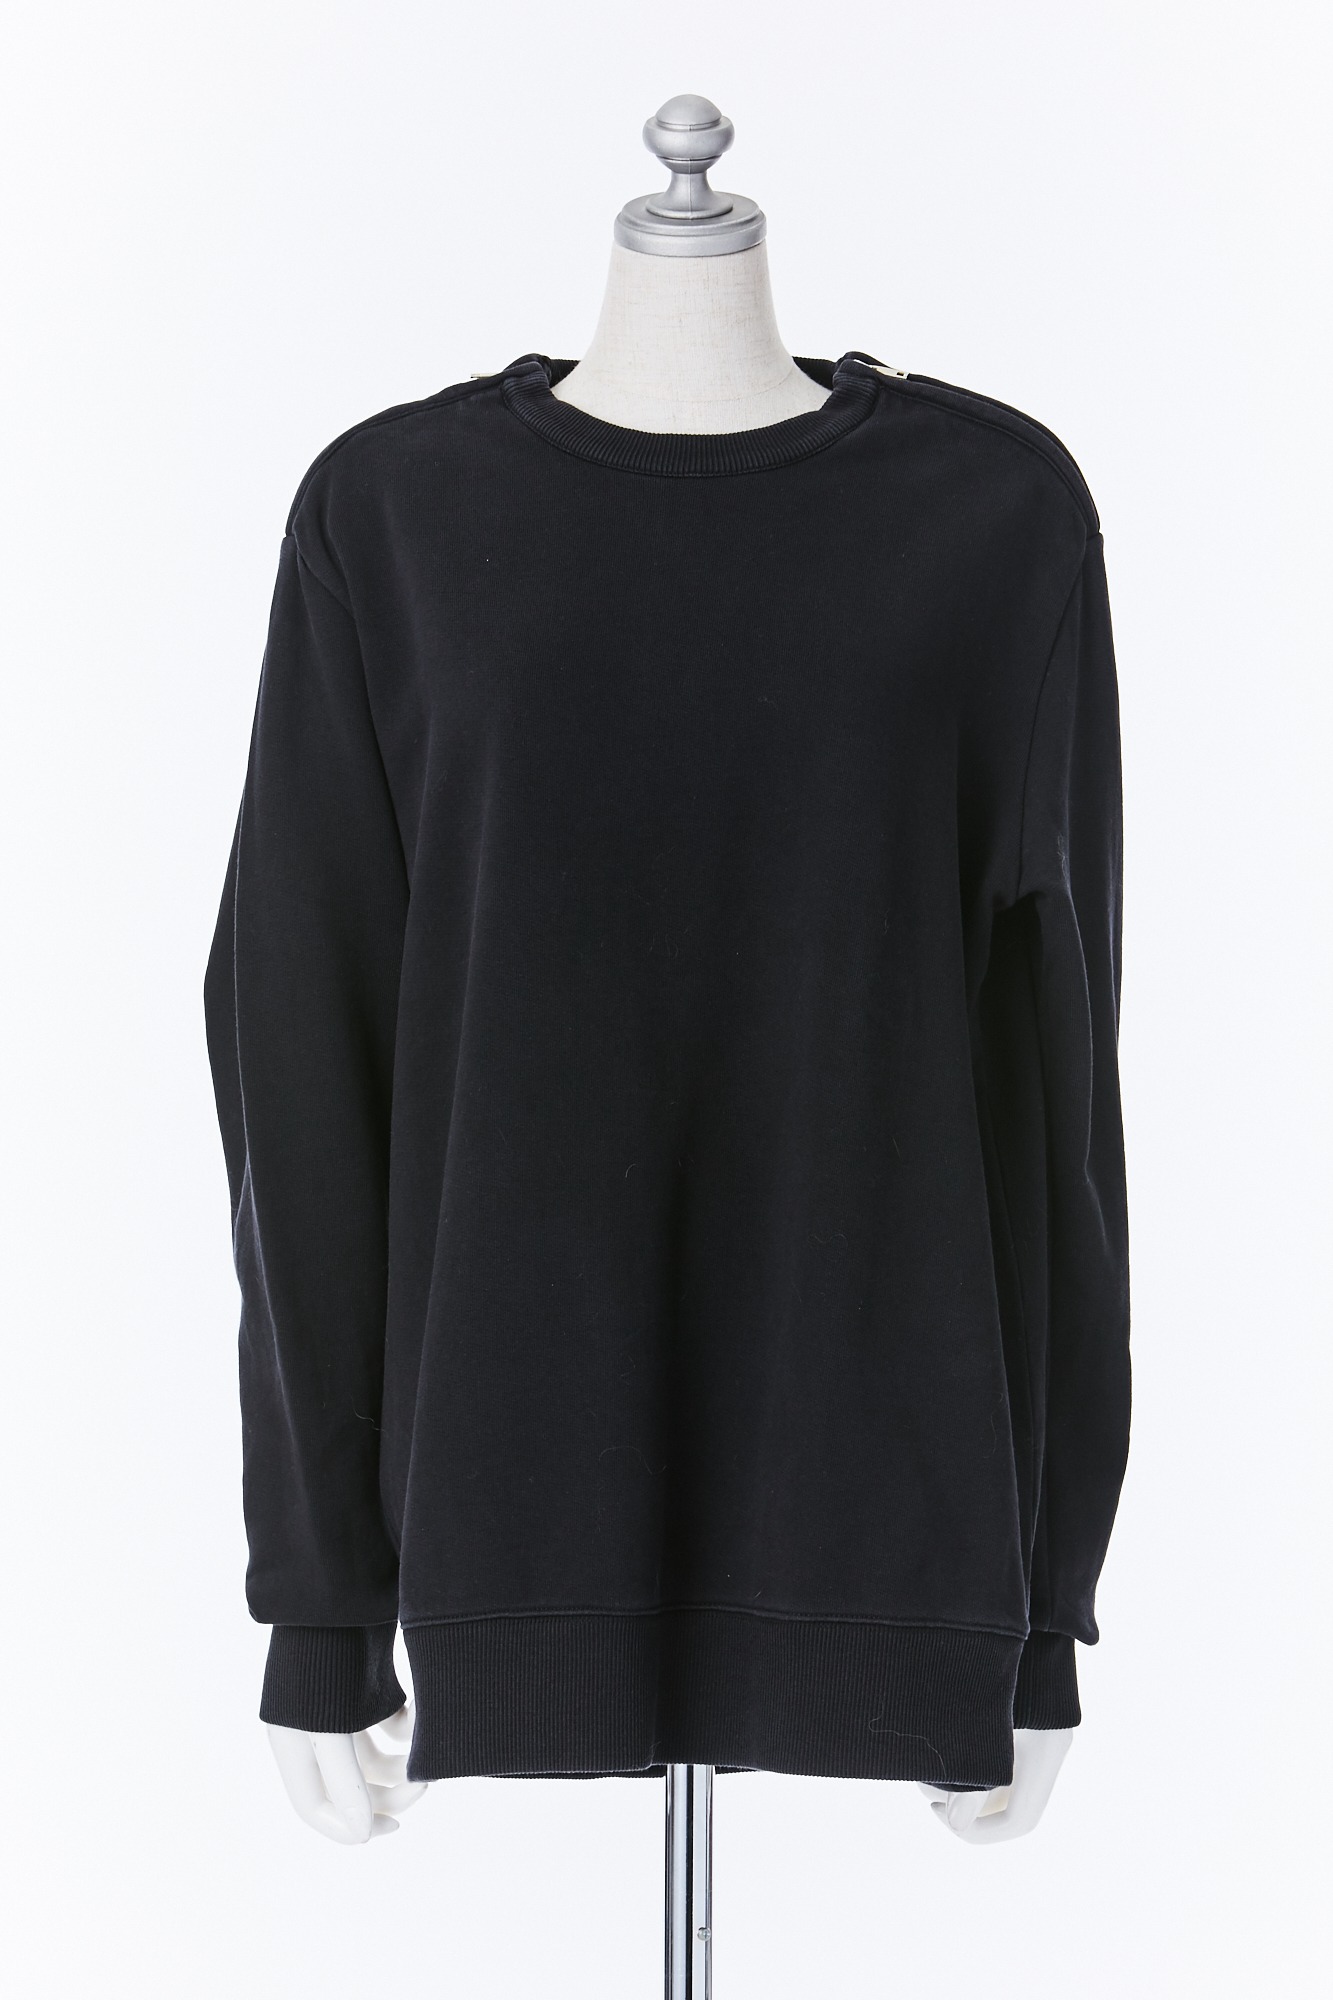 TO550186 GIVENCHY